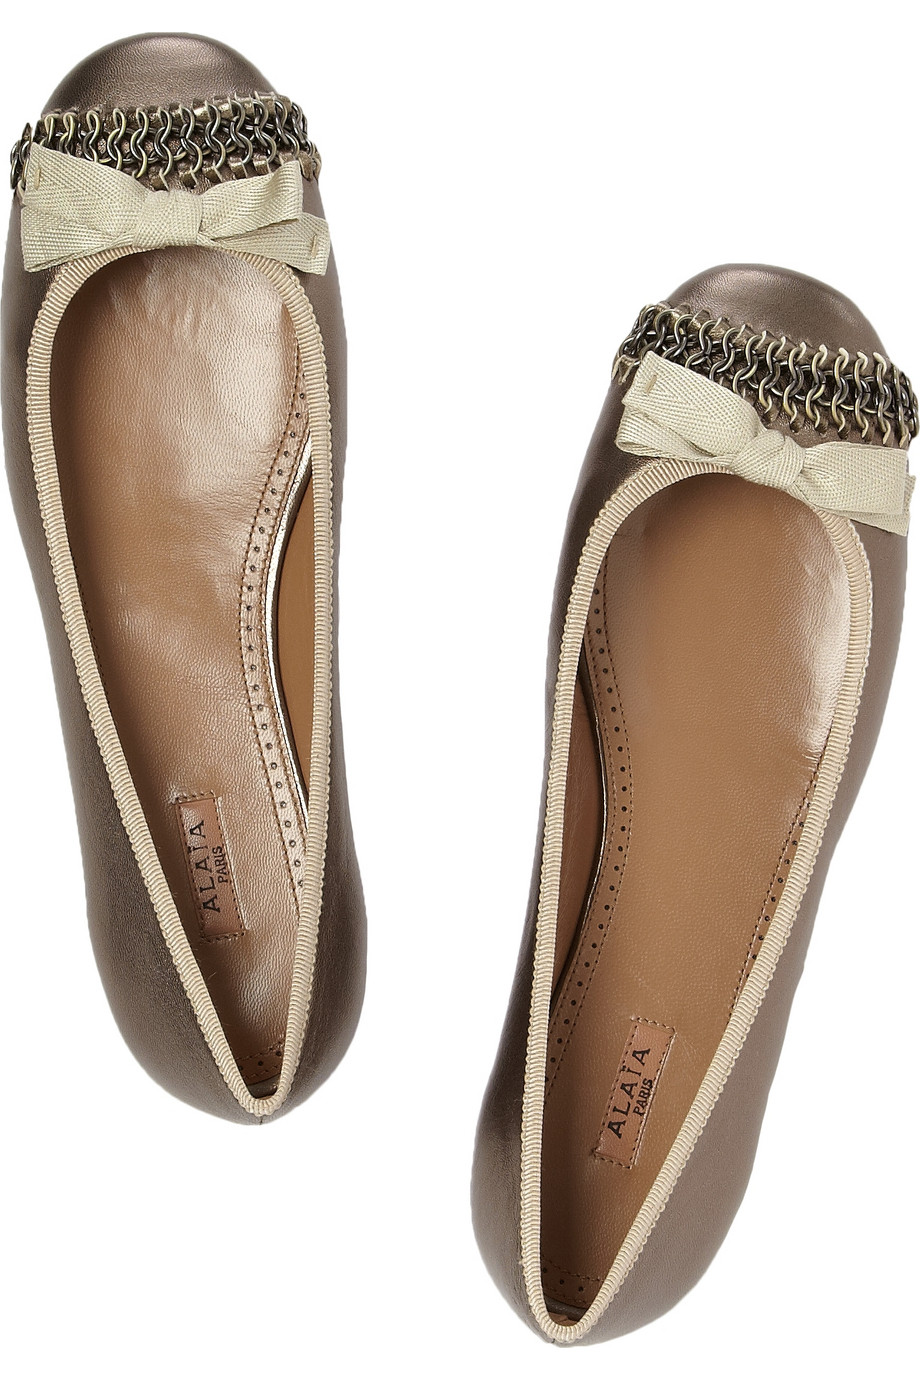 9a873ccf0e40 Shoeniverse  ALAÏA Gold Chain-embellished Metallic Leather Ballet Flats